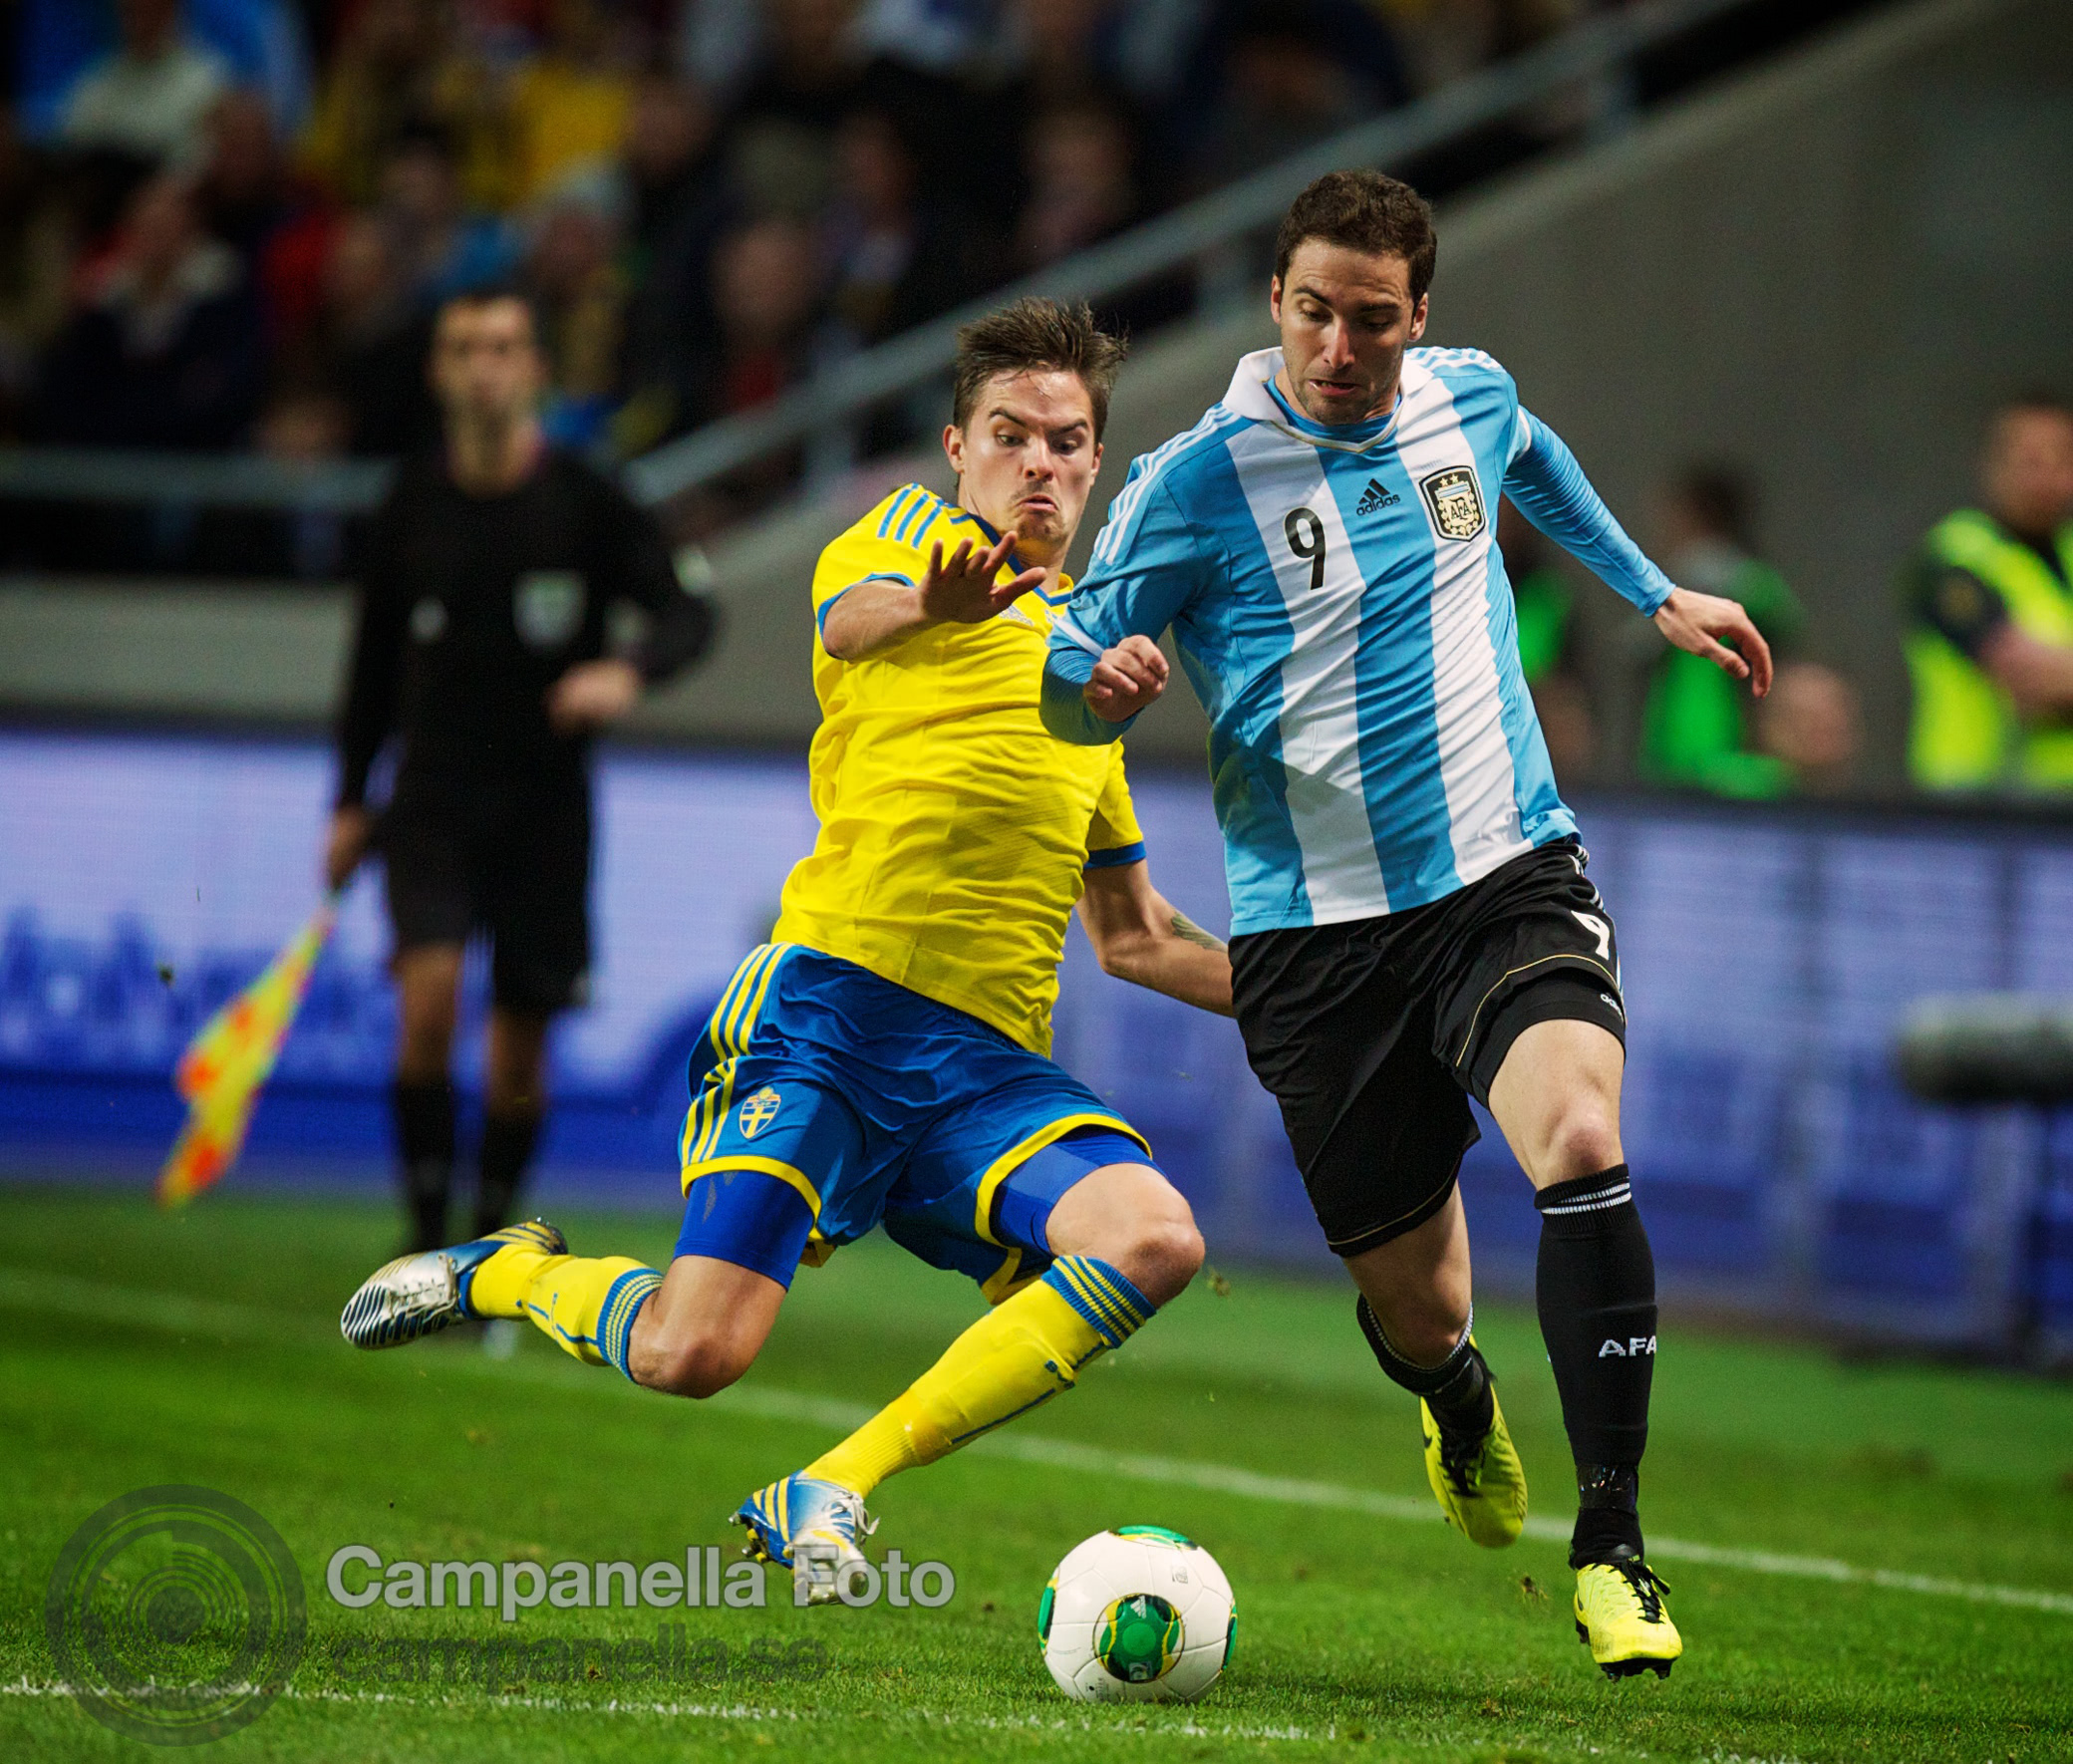 Sweden takes on Argentina - 22 of 35